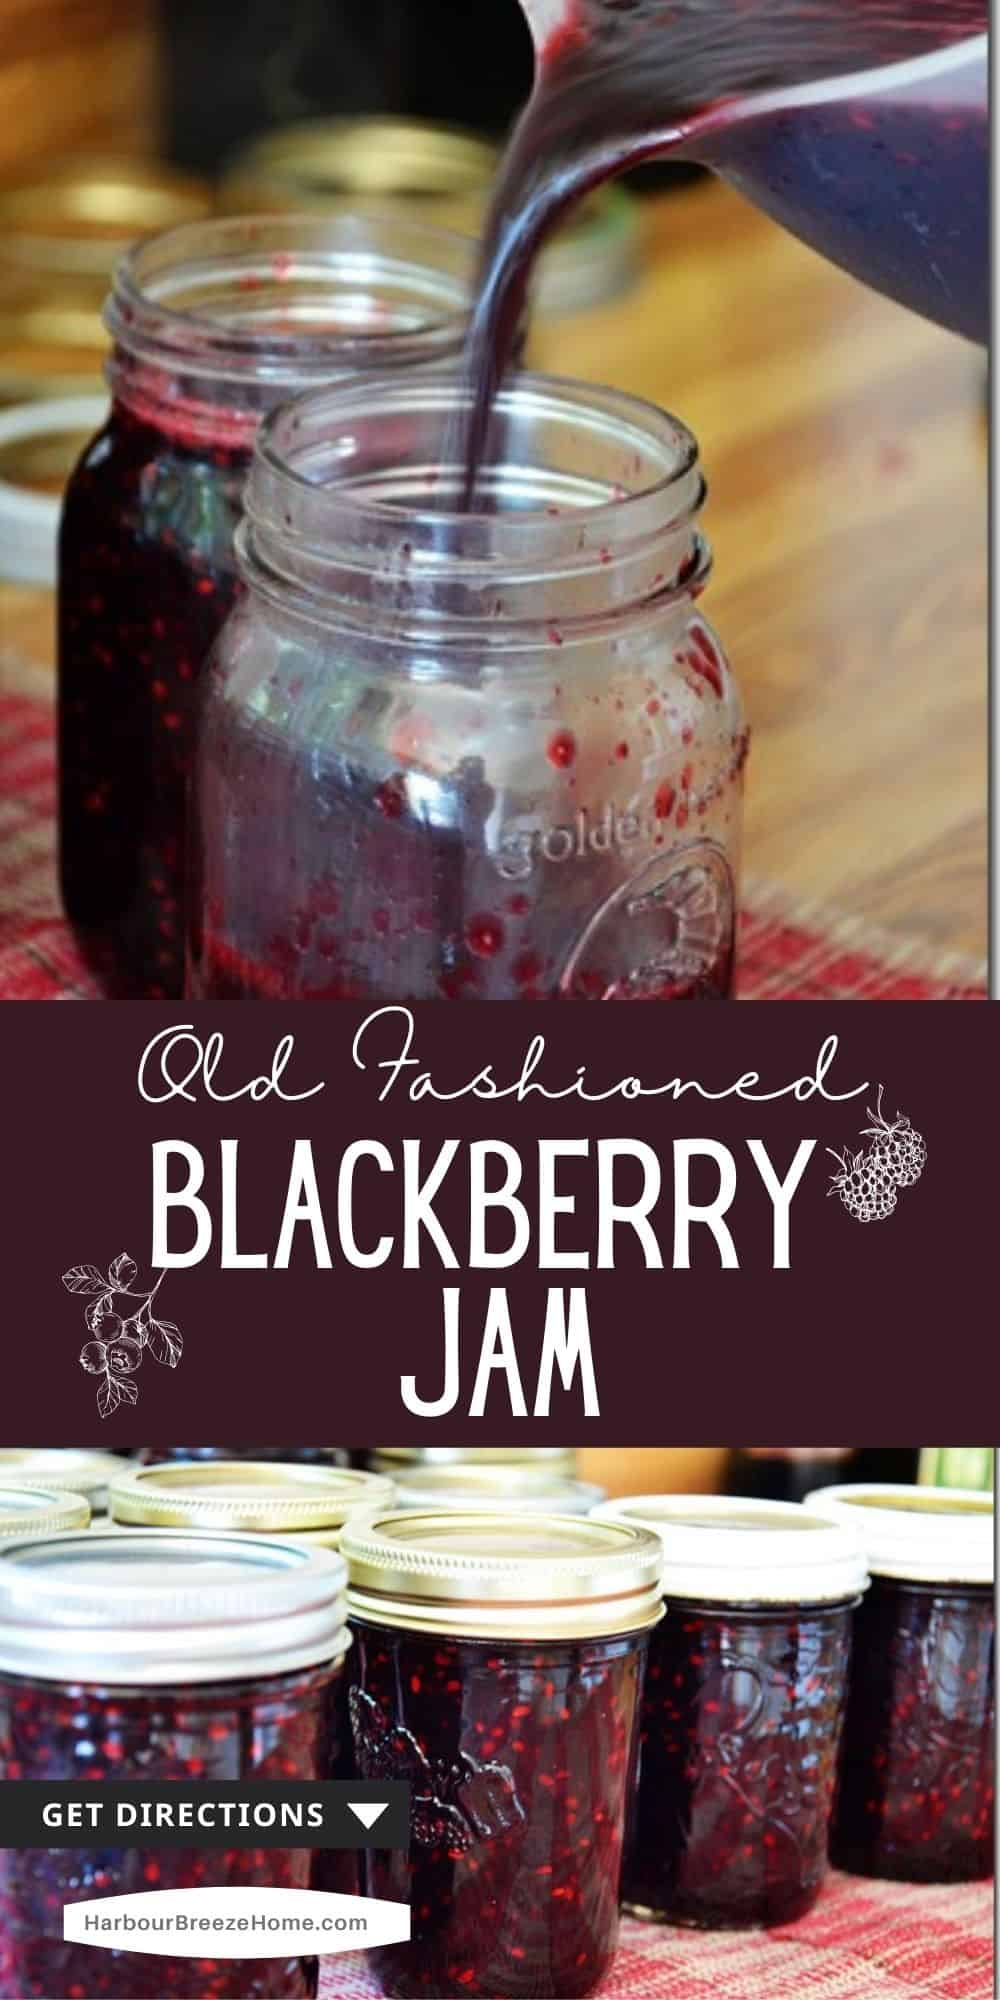 Old Fashioned Blackberry Jam being poured into jam jars